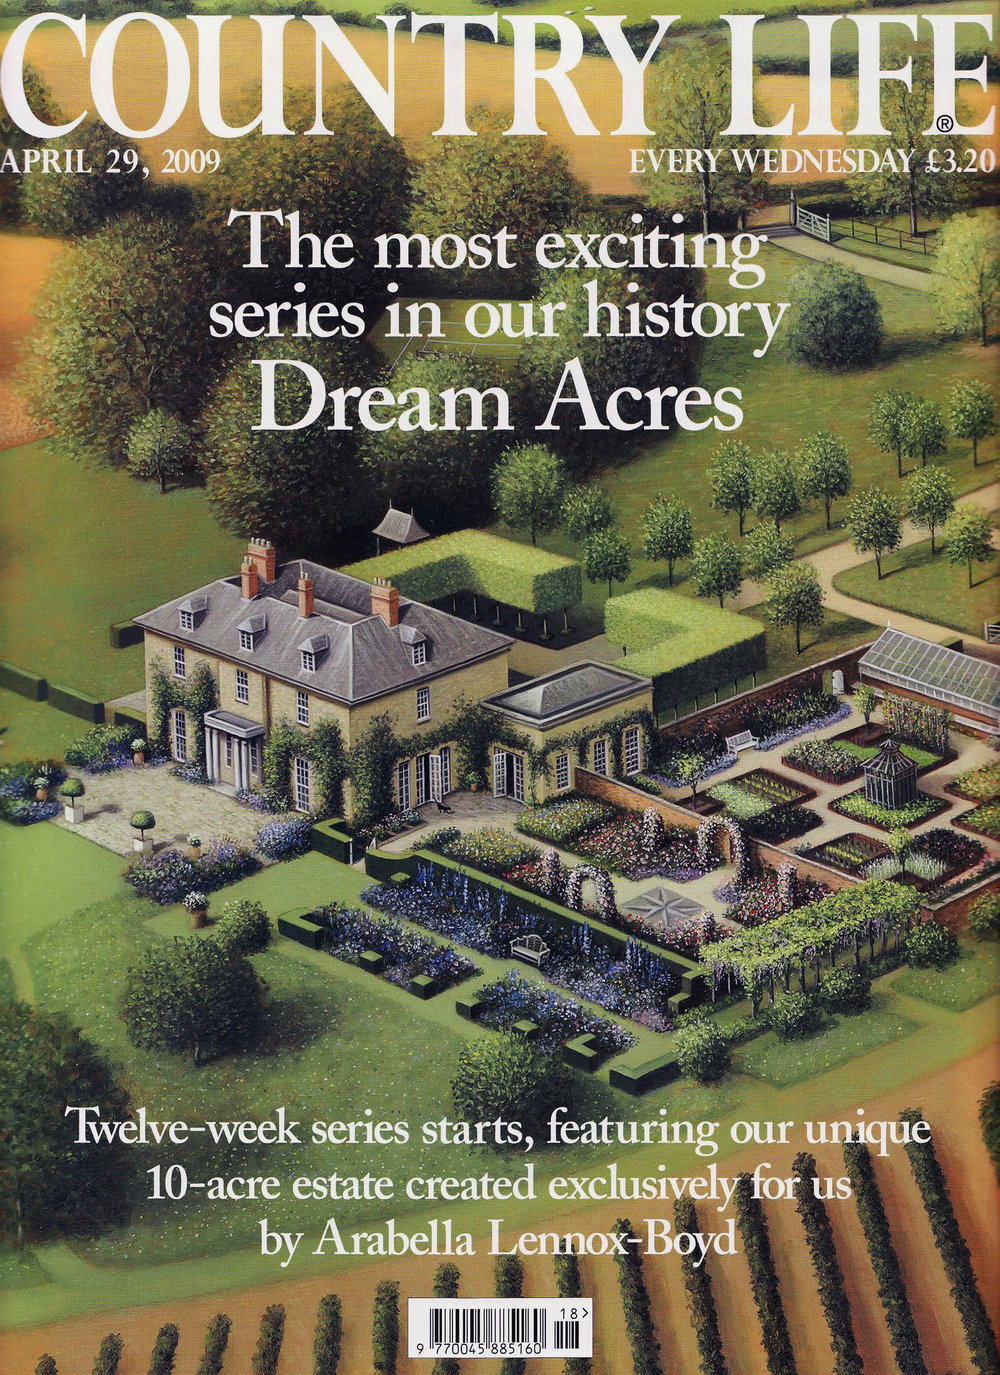 Jonathan Myles-Lea was commissioned by the editors of Country Life Magazine to produce this visualisation in oils of a ten-acre garden by the award-winnning garden designer Lady Arabella Lennox-Boyd. The series 'Dream Acres' ran in the magazine for 12 weeks. It is the only time in the magazine's history that a painting has been commissioned for its front cover. The whole image also ran as a double gate-fold image in the centre of the magazine.